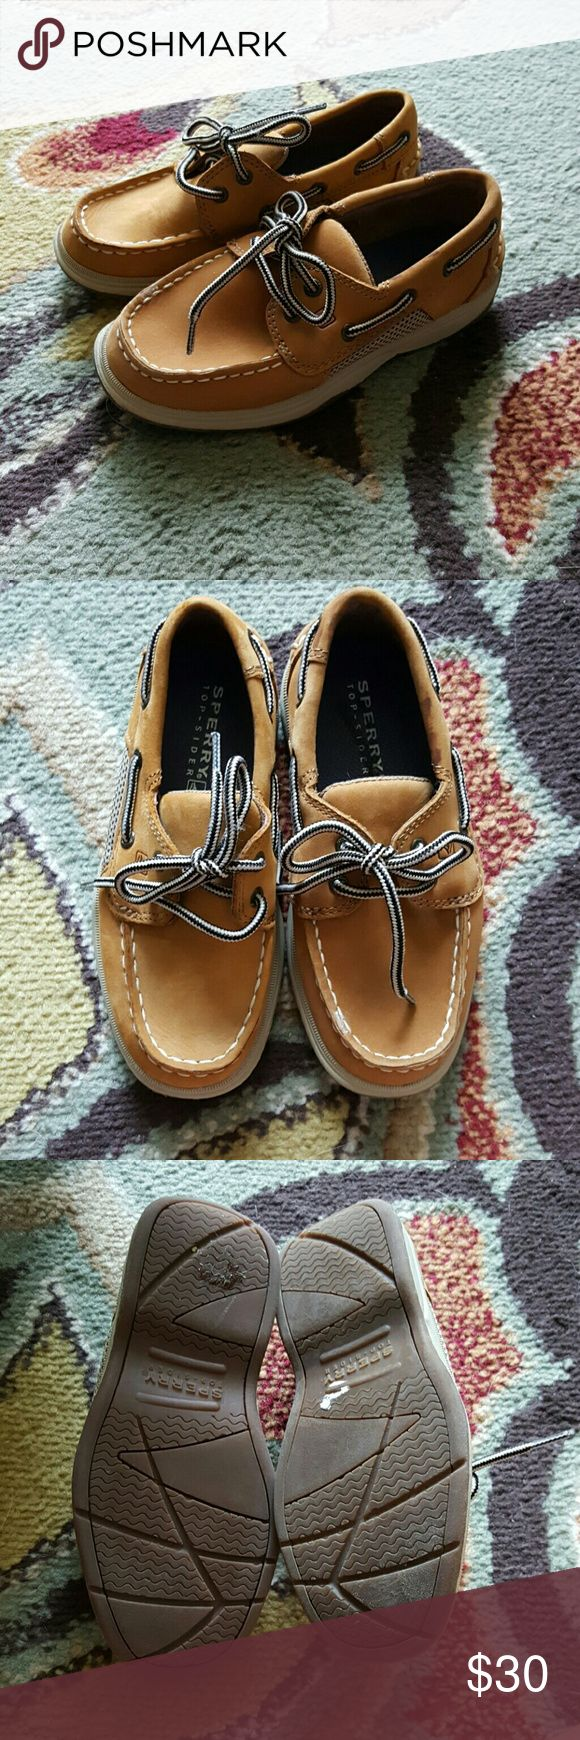 Boys Sperry top sider intrepid Great condition worn once!!! Soles will be cleaned before shipped 😄 Sperry Top-Sider Shoes